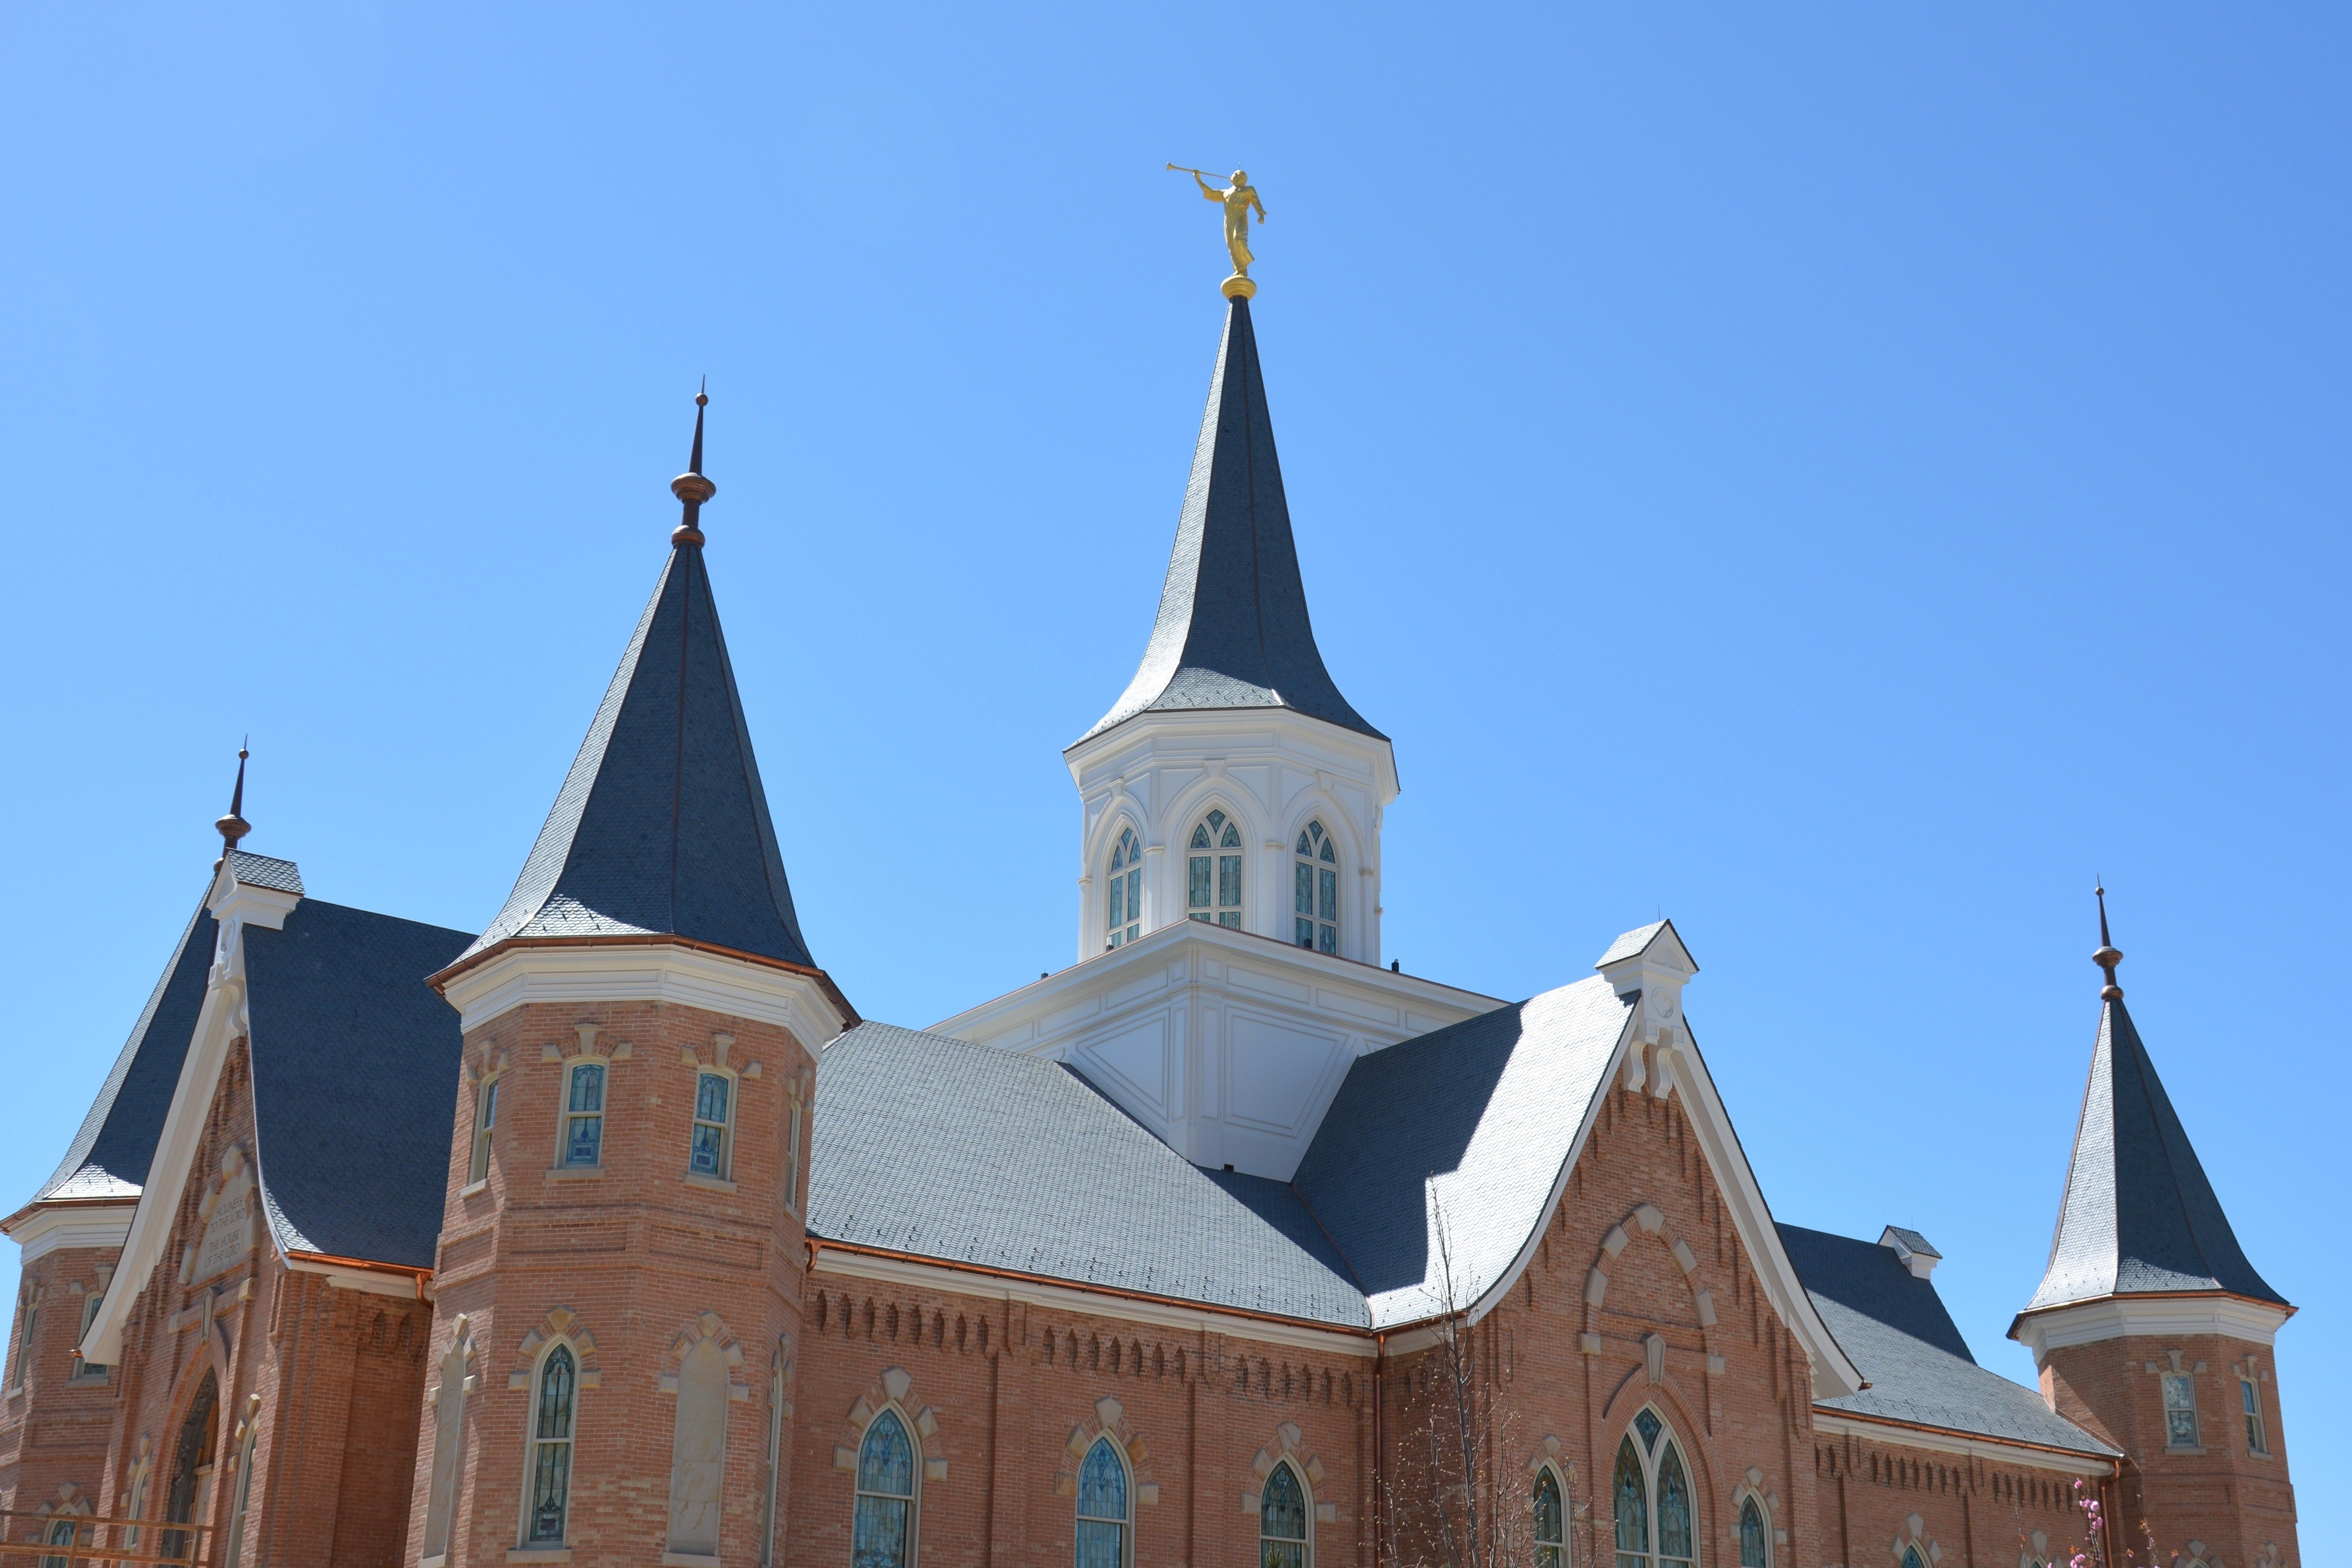 A side view of the Provo City Center Temple with a clear sky overhead.